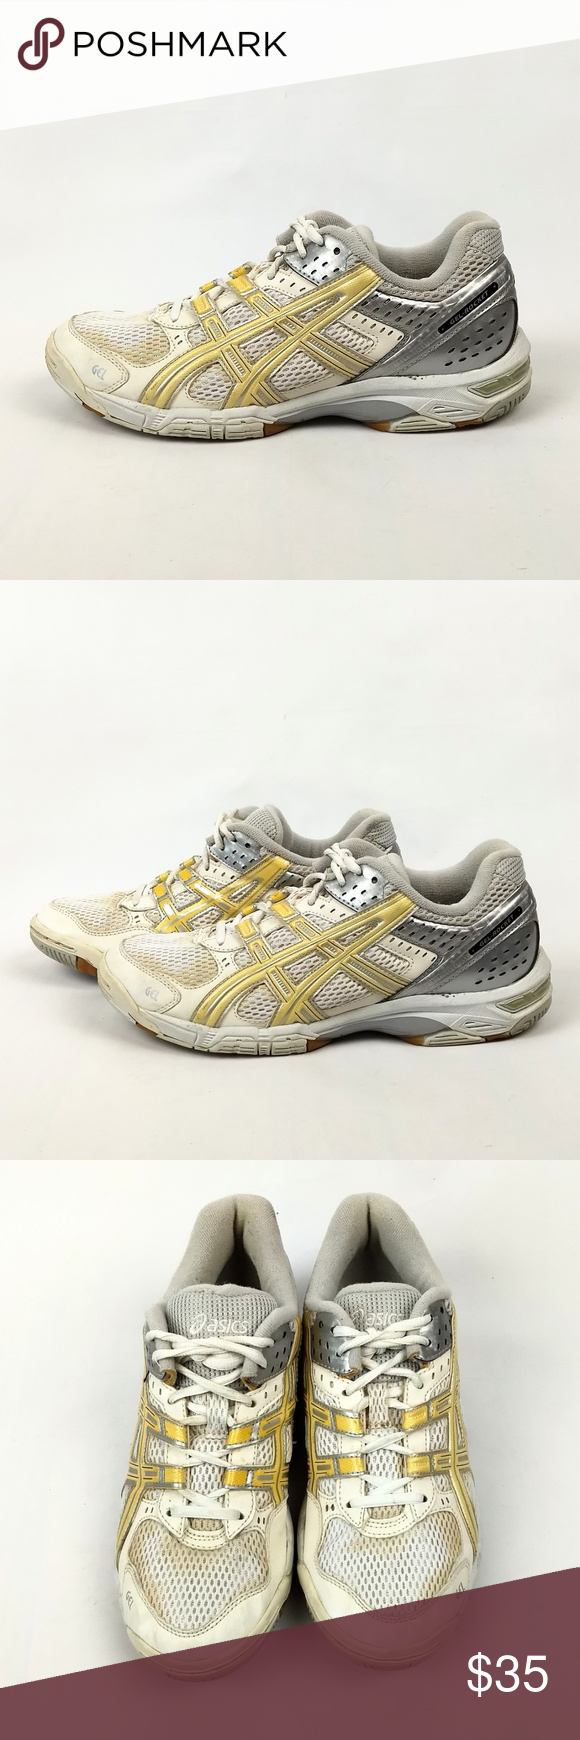 Asics B053n Gel Rocket 5 Volleyball Shoes Size 8 5 Asics Gel Rocket 5 Volleyball Shoes Color White Silver Gold Model B0 With Images Volleyball Shoes Shoes Gold Models